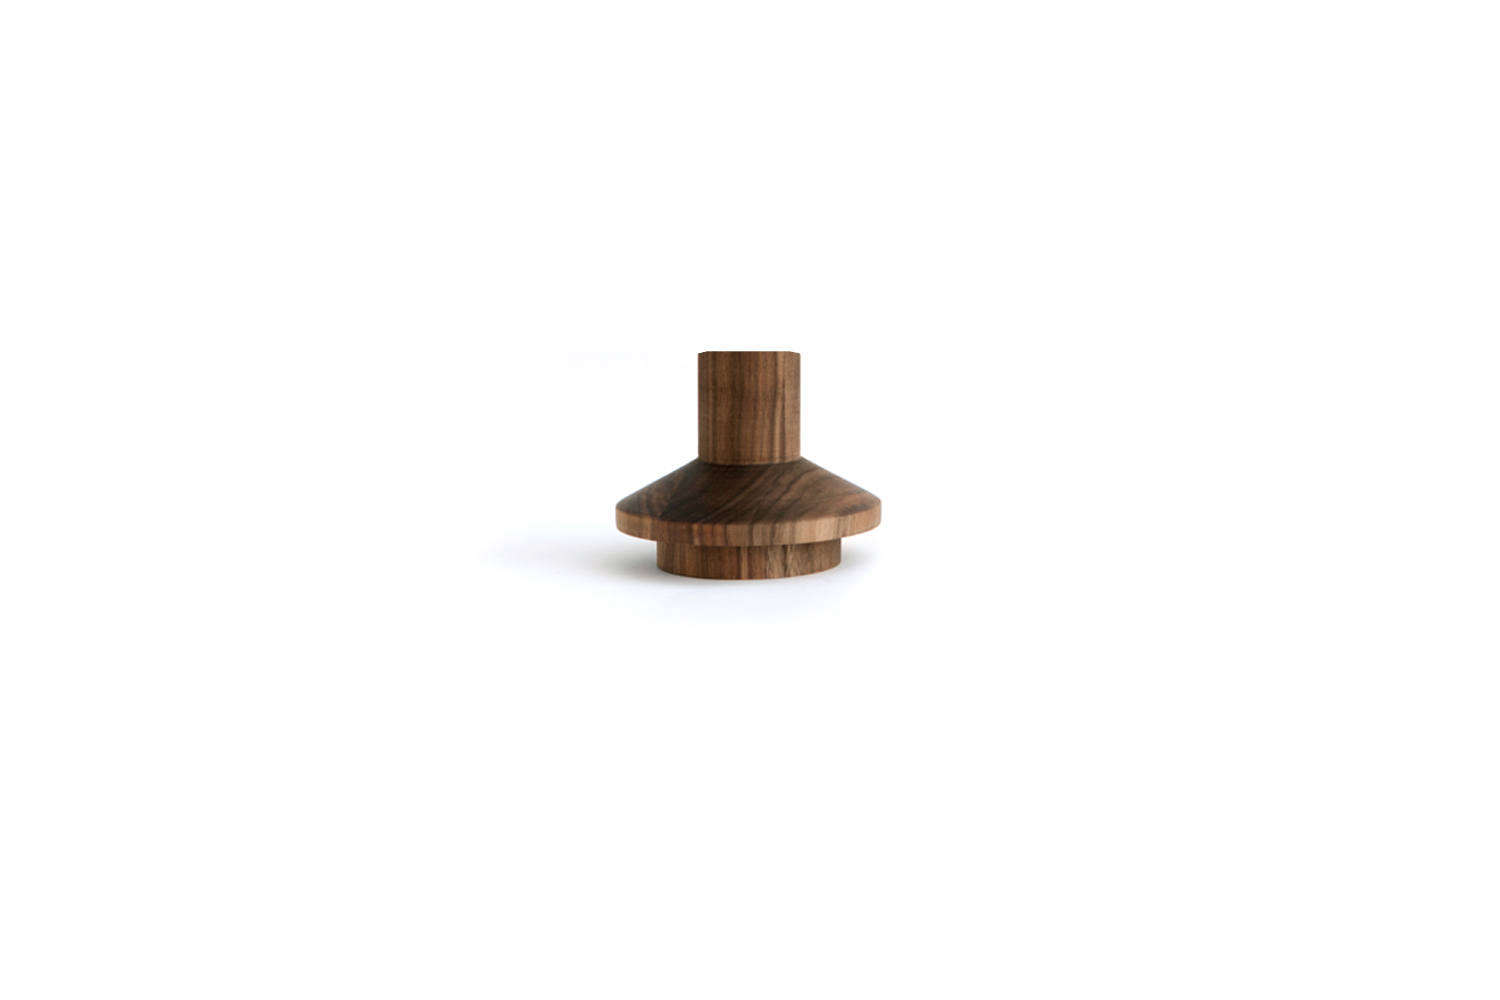 The Michaël VerheydenLighthouse Candle Holder in walnut is available in the -inch tall size for $9 at Luminaire.